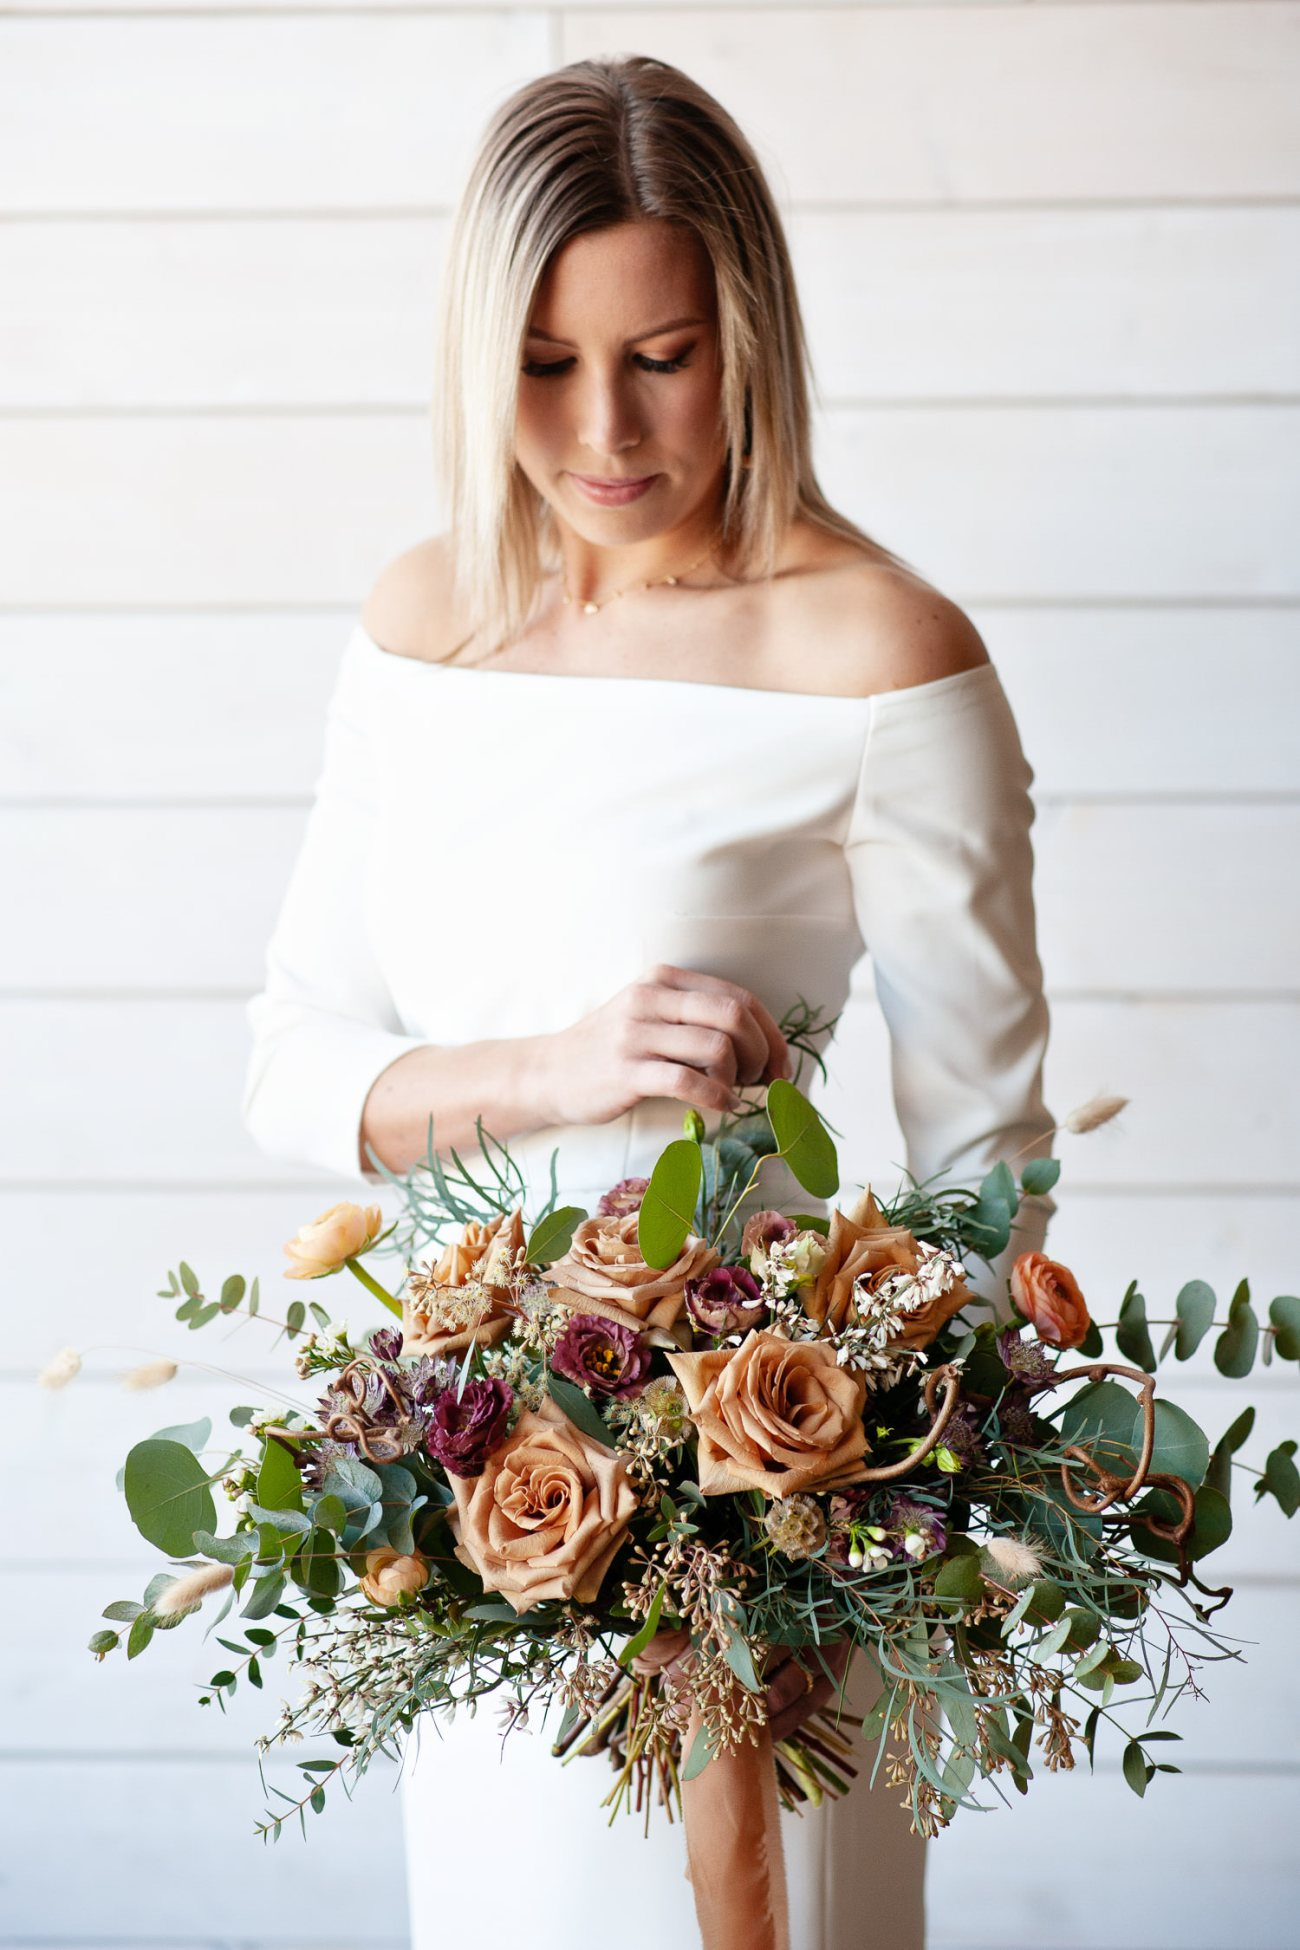 Curated elopement packages with Sweet Bloom, 206 Event Co & Tara Whittaker Photography